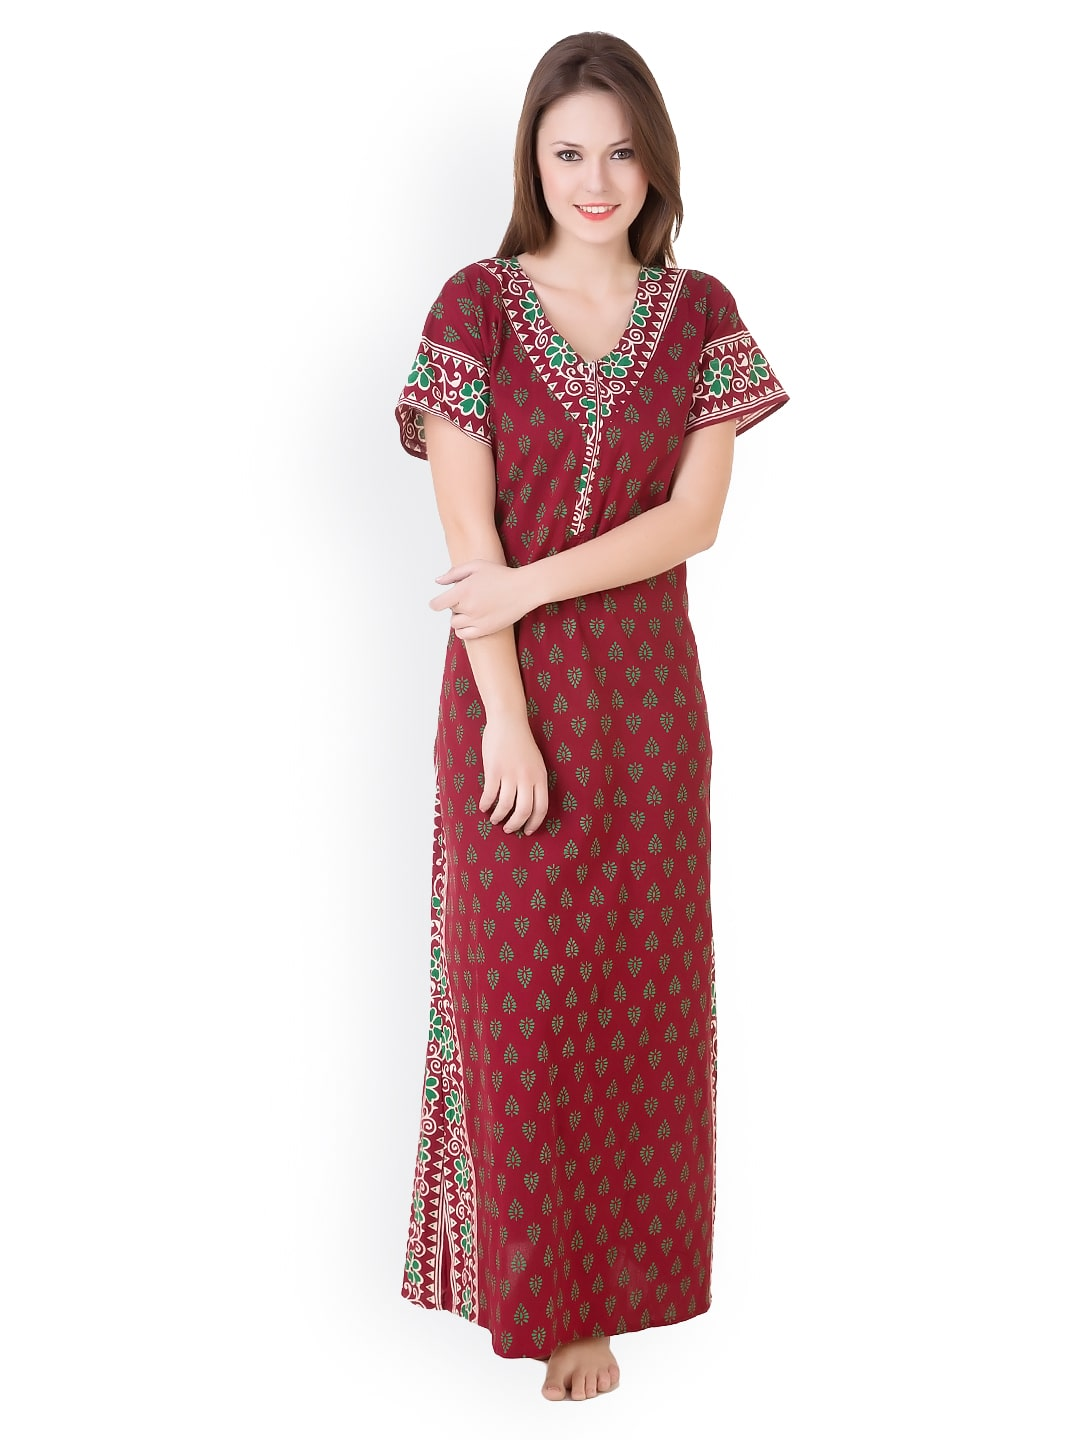 Masha nt-a114-749 Maroon Cotton Nighty And Night Gowns - Best ... 61f323c00